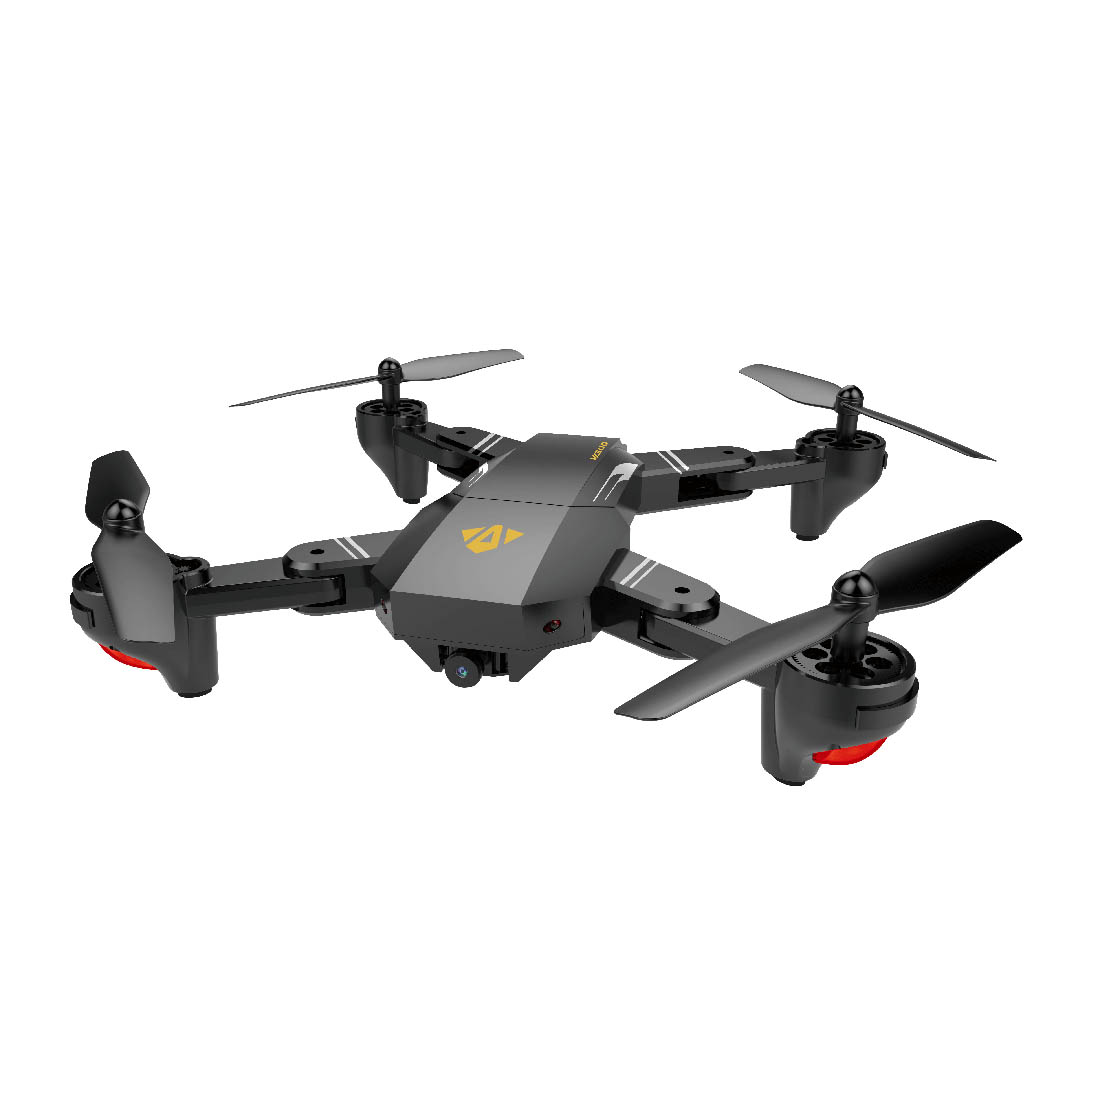 XS809W WiFi FPV Foldable RC Quadcopter with Camera , 2.4GHz 6-Axis Gyro Remote Control Drone Gravity Sensor Altitude Hol